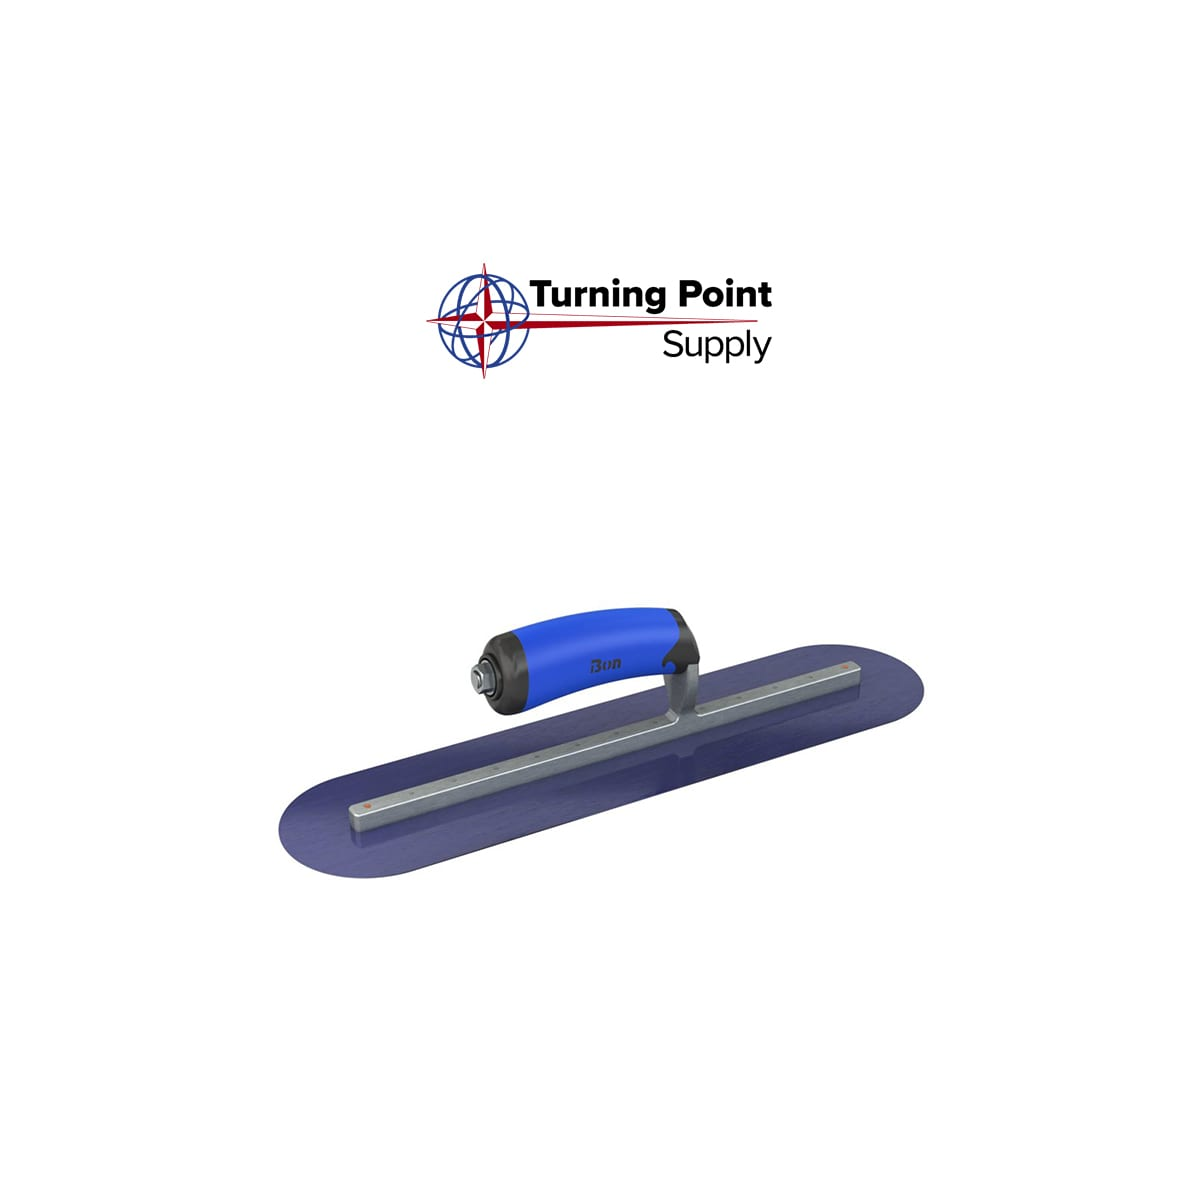 BLUE STEEL FINISHING TROWEL ROUND END 18 X 4 Bon Tools 62-584